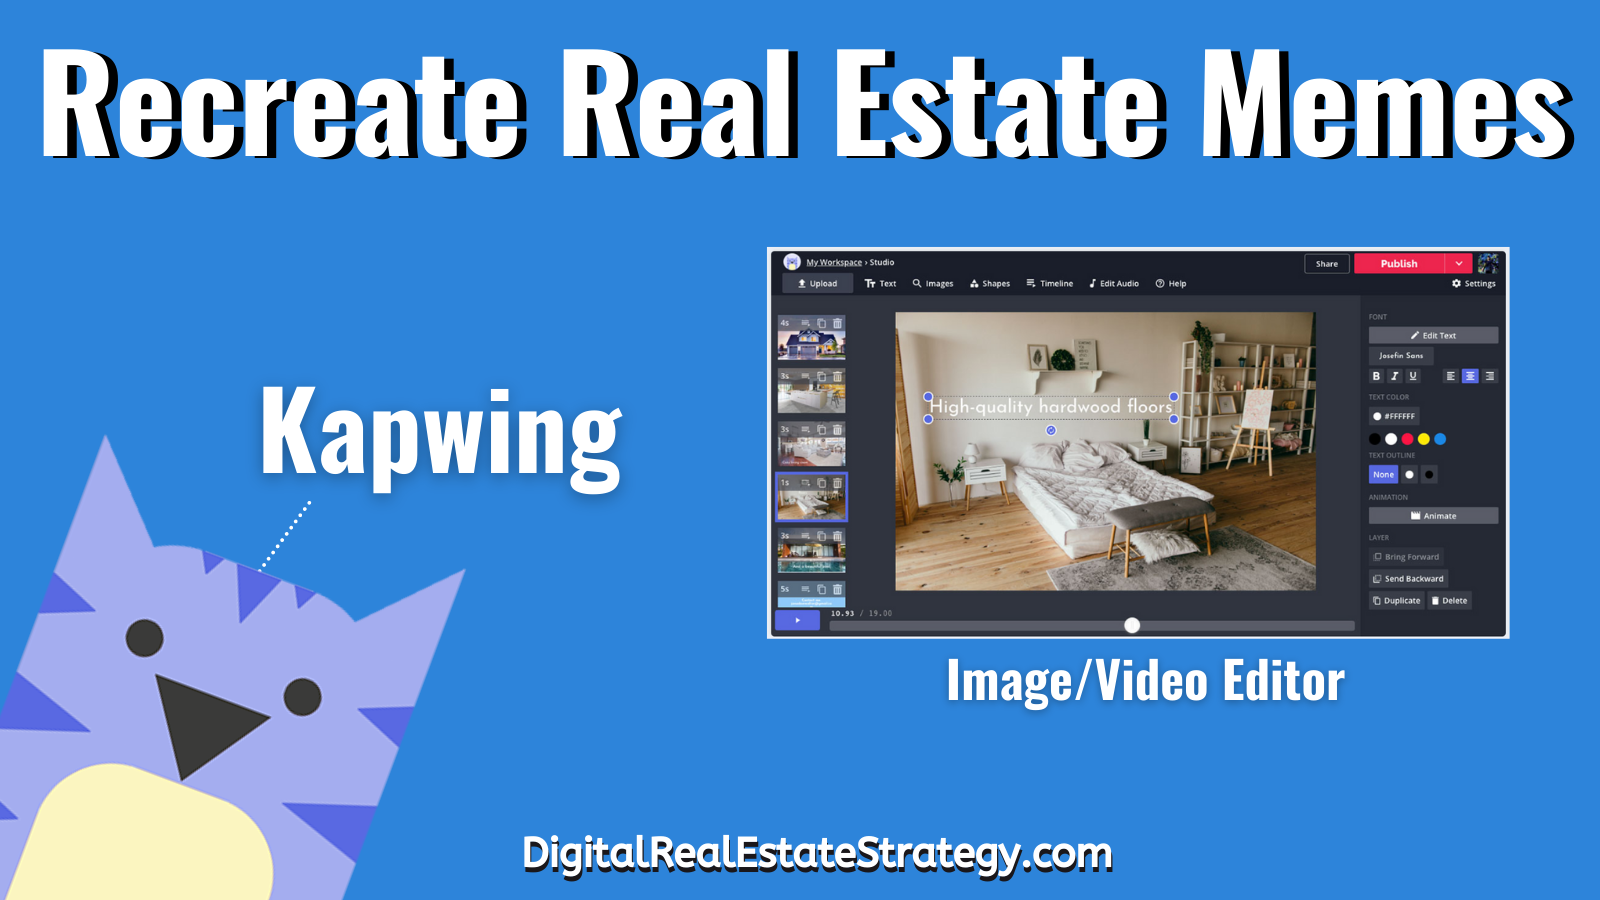 Making Real Estate Memes - Jerome Lewis - eXp Realty - Philadelphia - Recreate Real Estate Memes